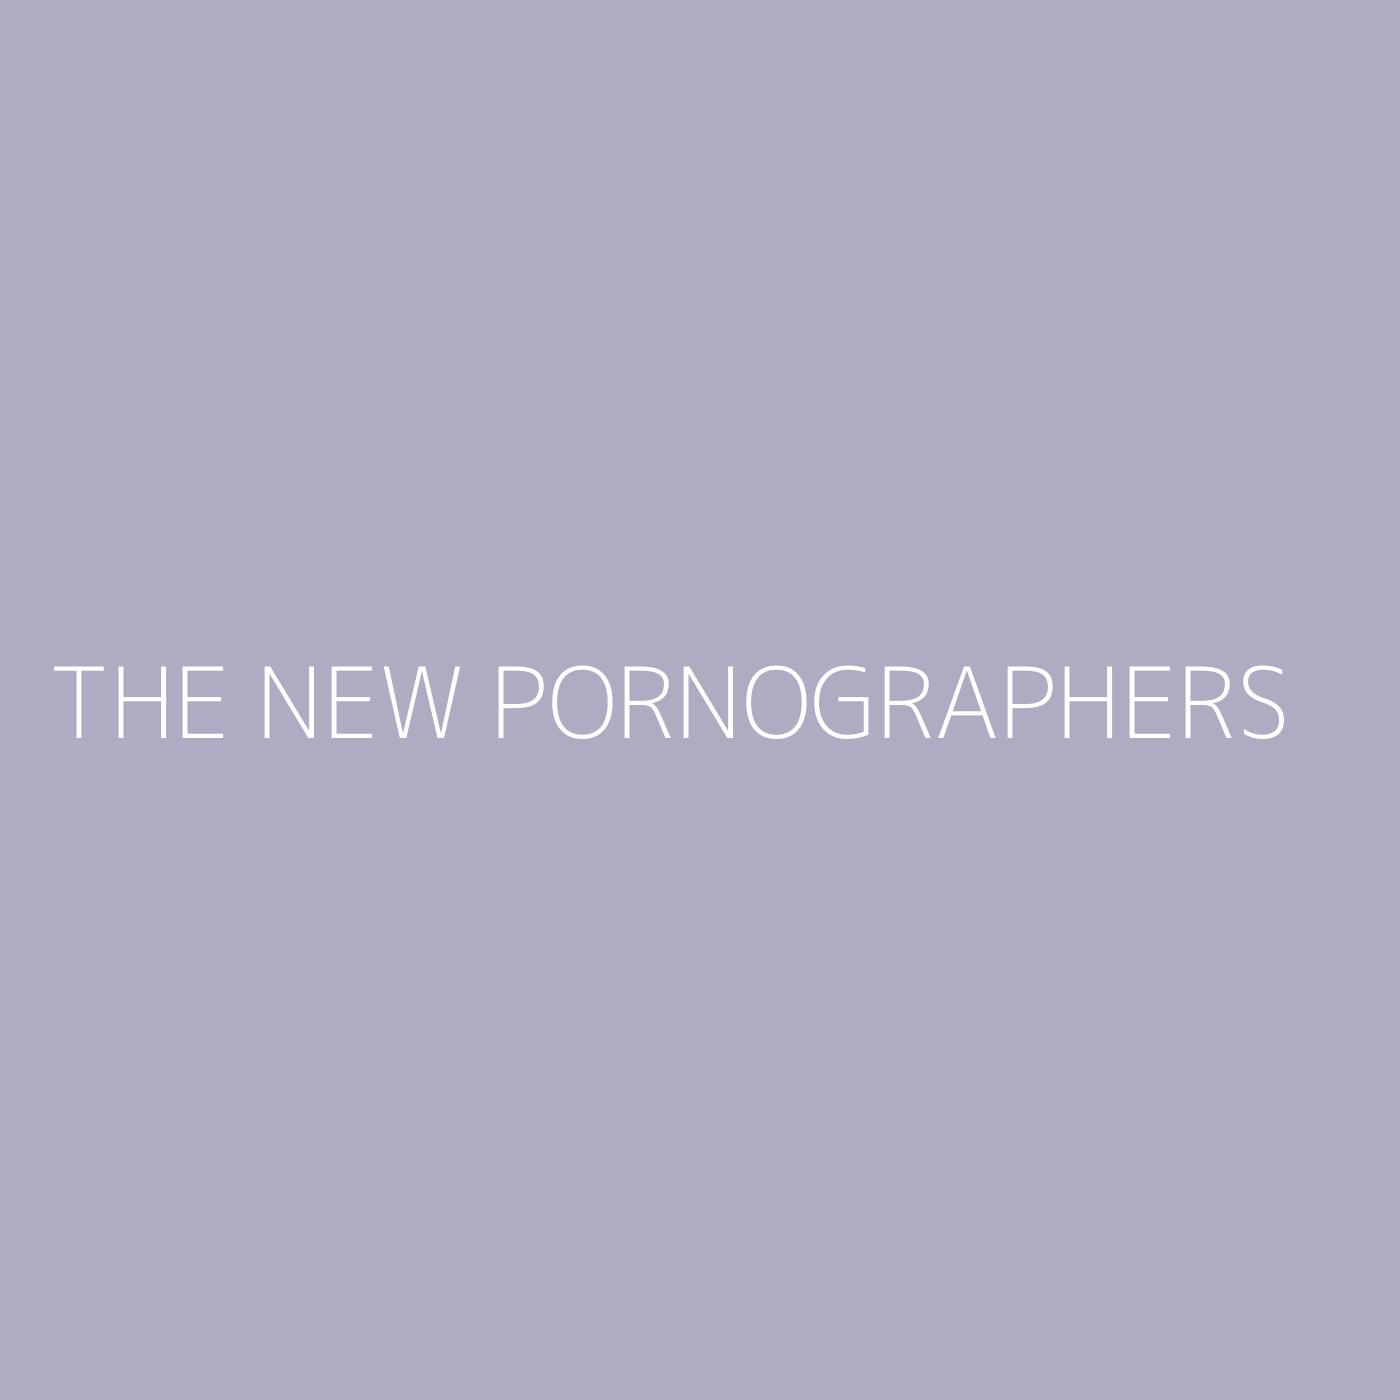 The New Pornographers Playlist Artwork